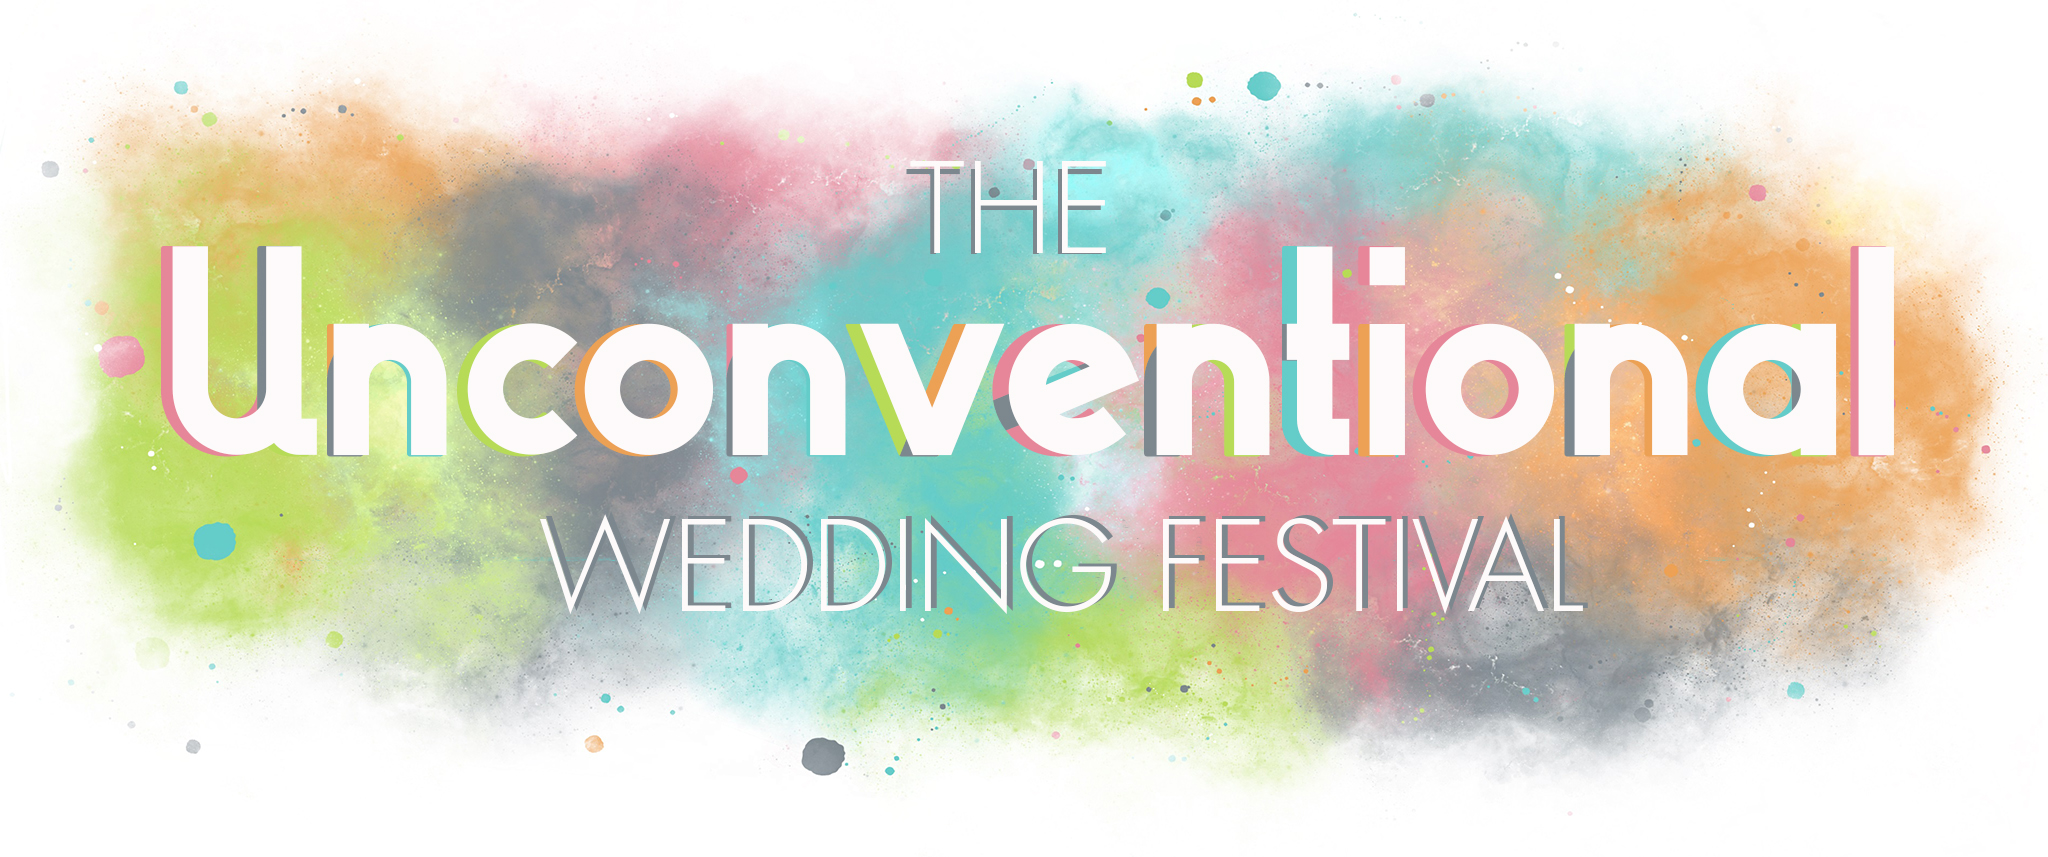 Unconventional wedding festival logo